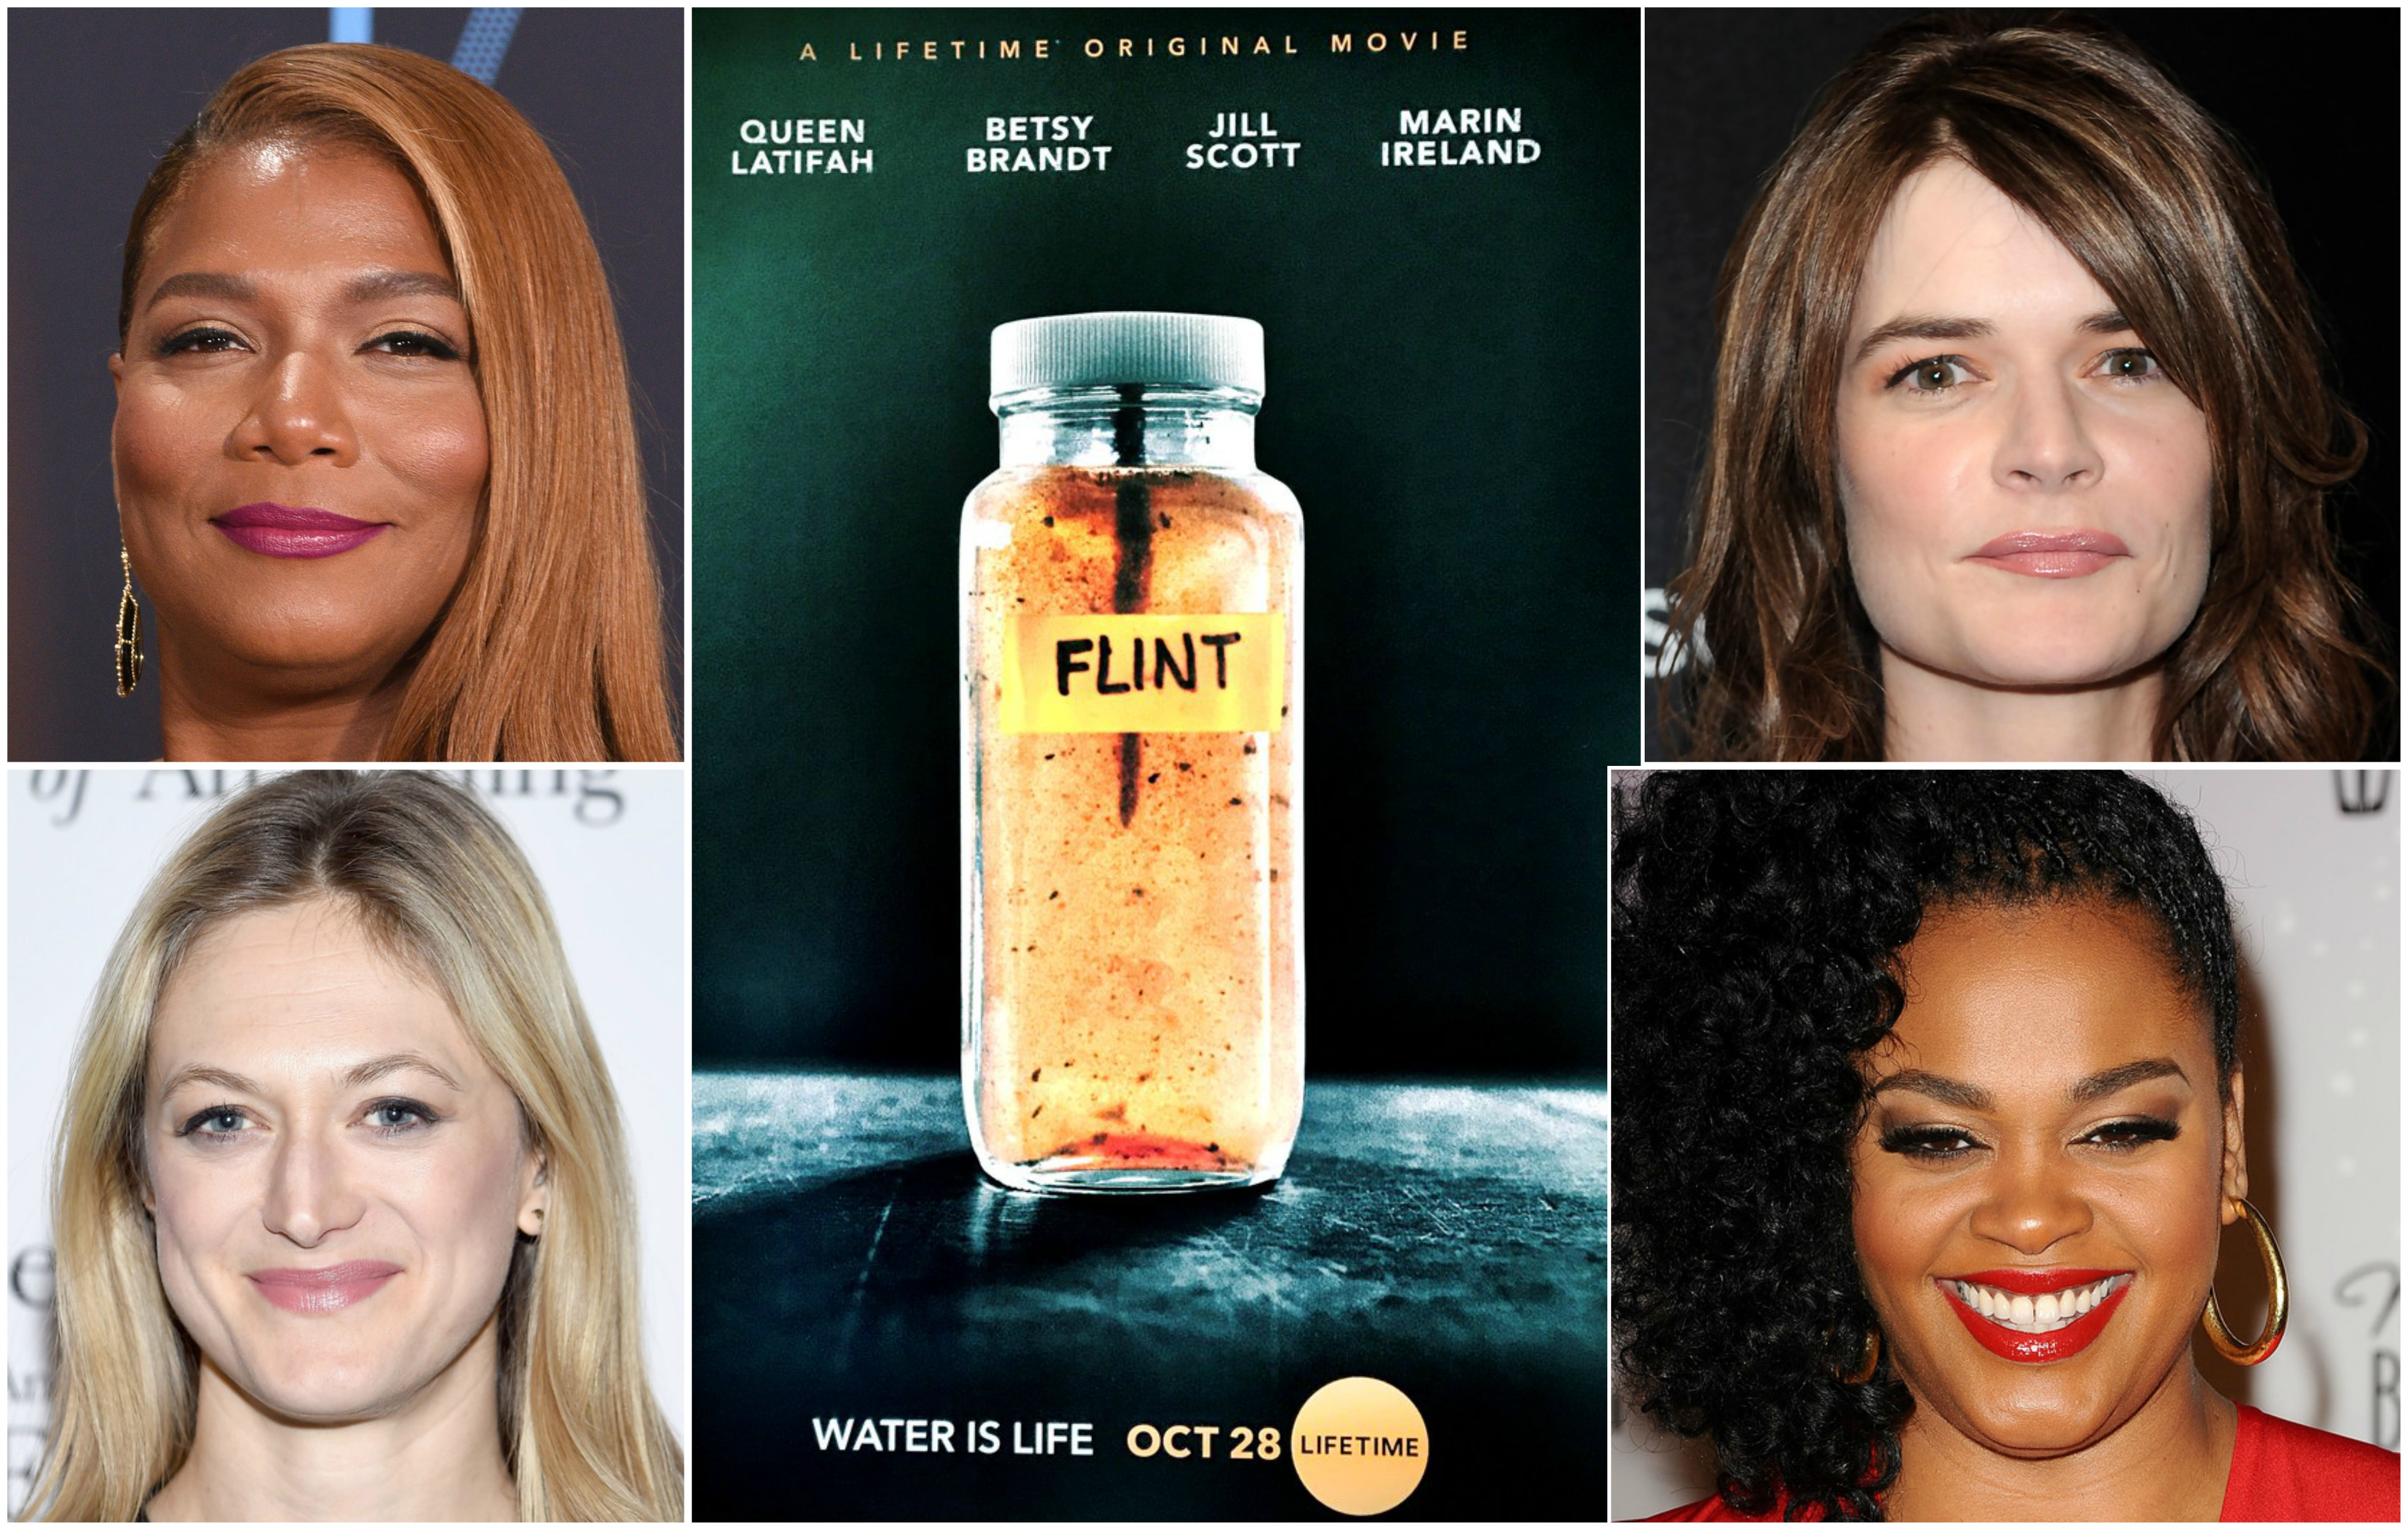 lifetime tv has released a trailer and more photos of queen latifah betsy brandt jill scott and marin ireland from their upcoming film flint which is - Queen Latifah Christmas Movie